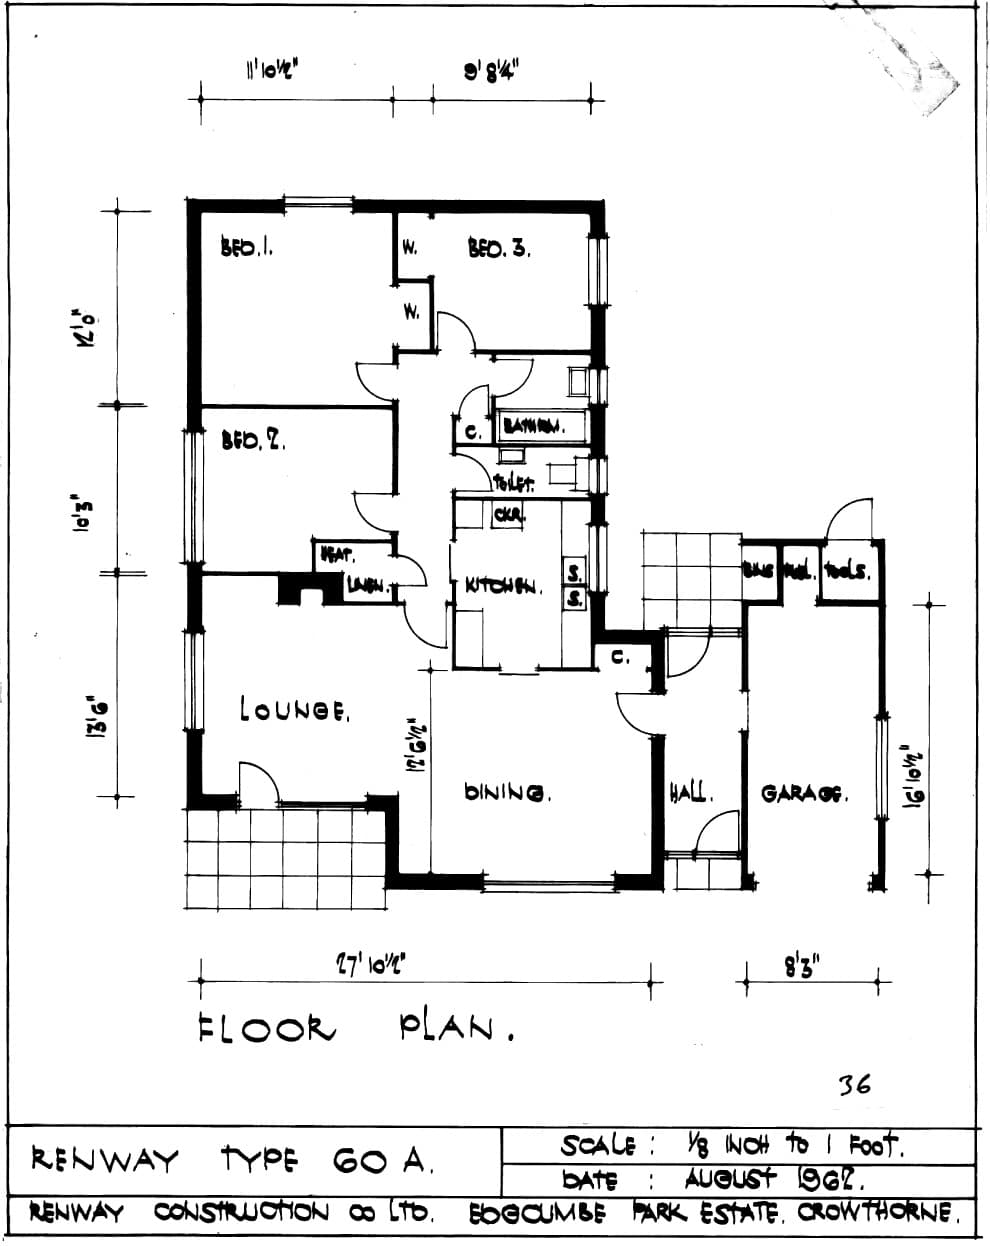 House plans and design architectural house plans bungalow Architectural floor plans